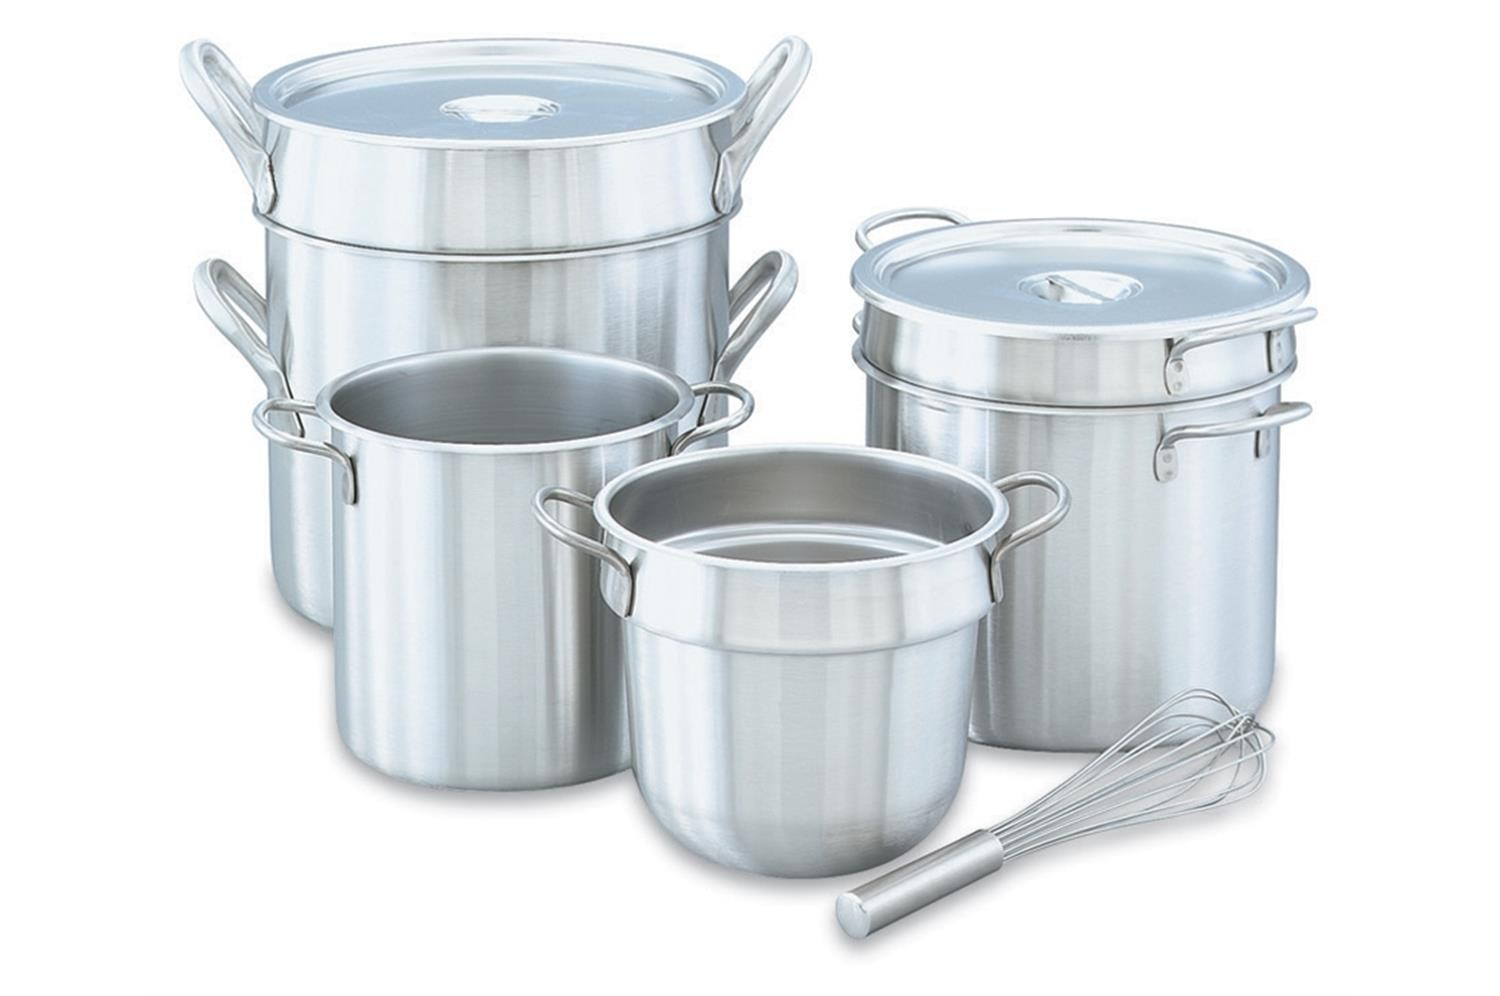 Vollrath 77070 Stainless Steel Double Boiler 7 Qt.